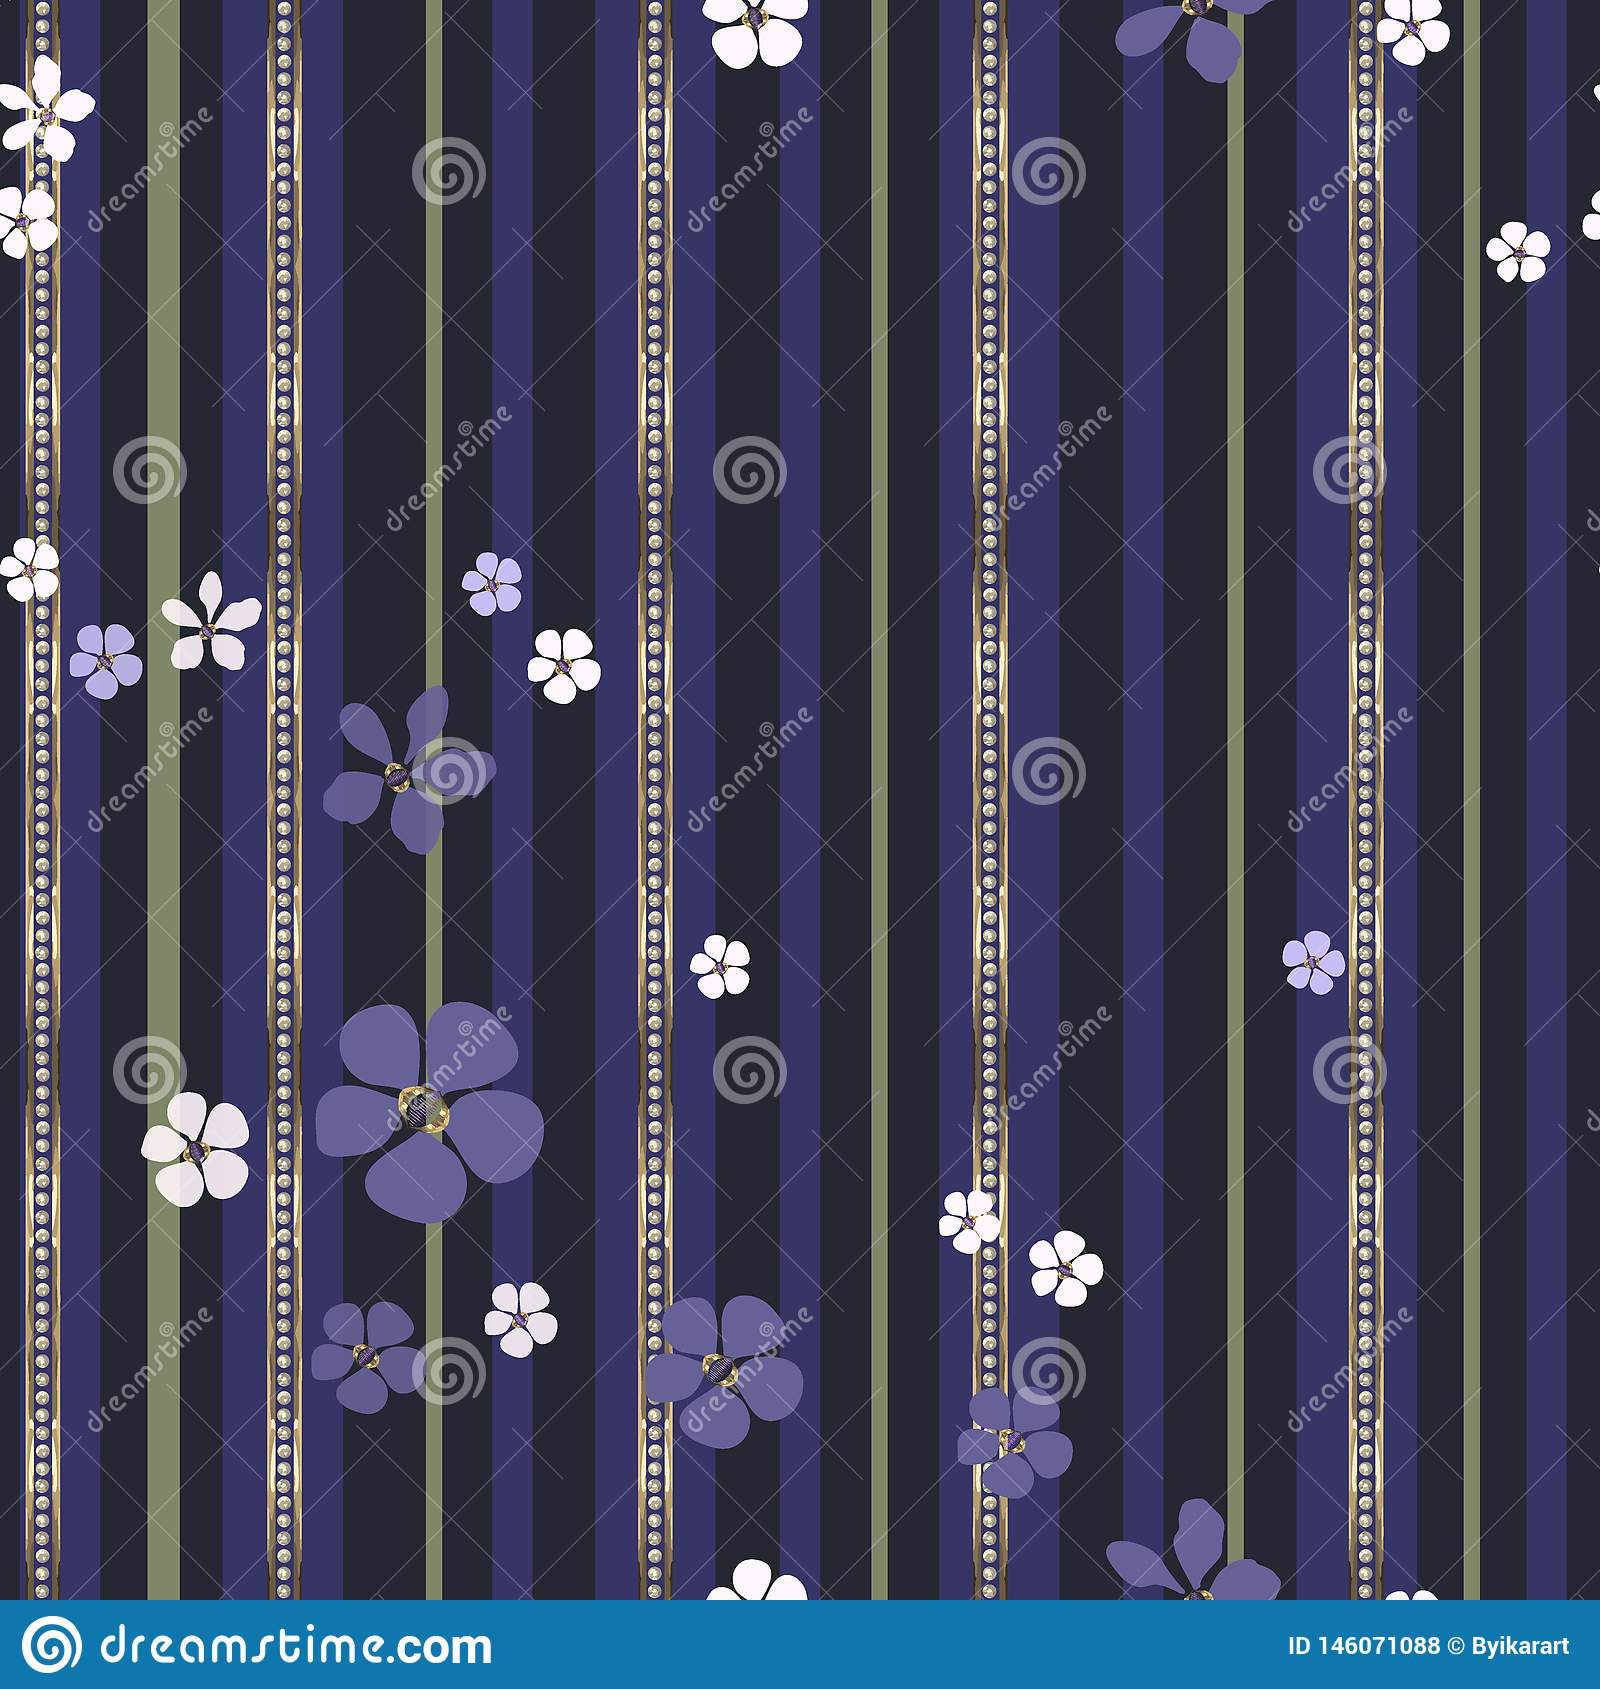 Abstract white and purple flowers and gold strips with diamonds.